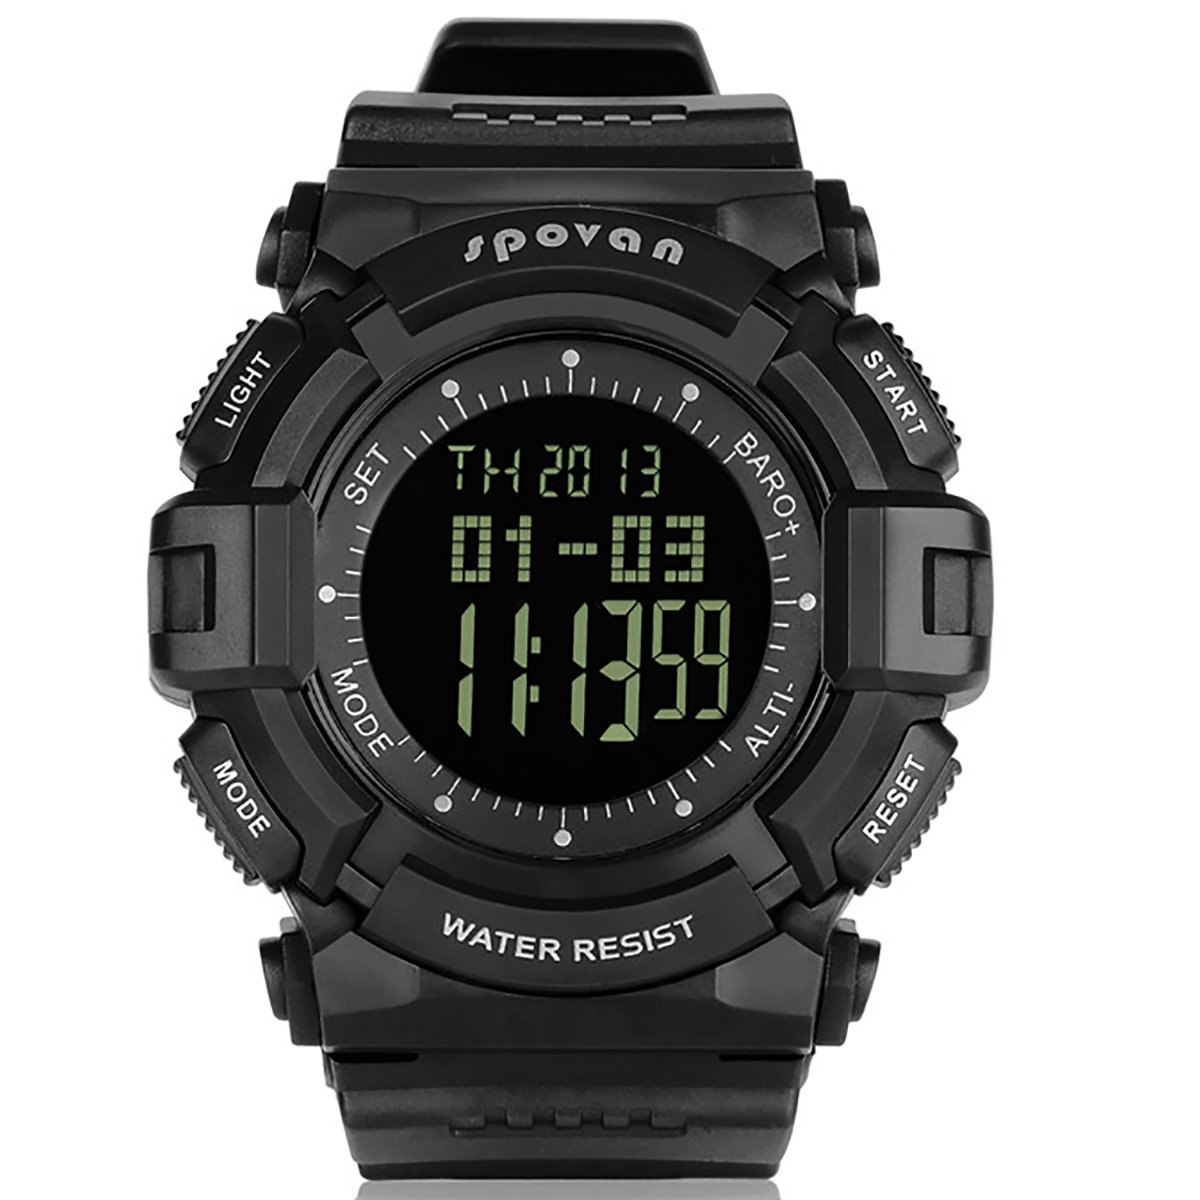 JUSHENG Spovan Multi function Sports Compass Alarm Altimeter Fishing Quartz Watches Suitable for Climbing Running Fishing Competition and other sports … (Black) by JUSHENG